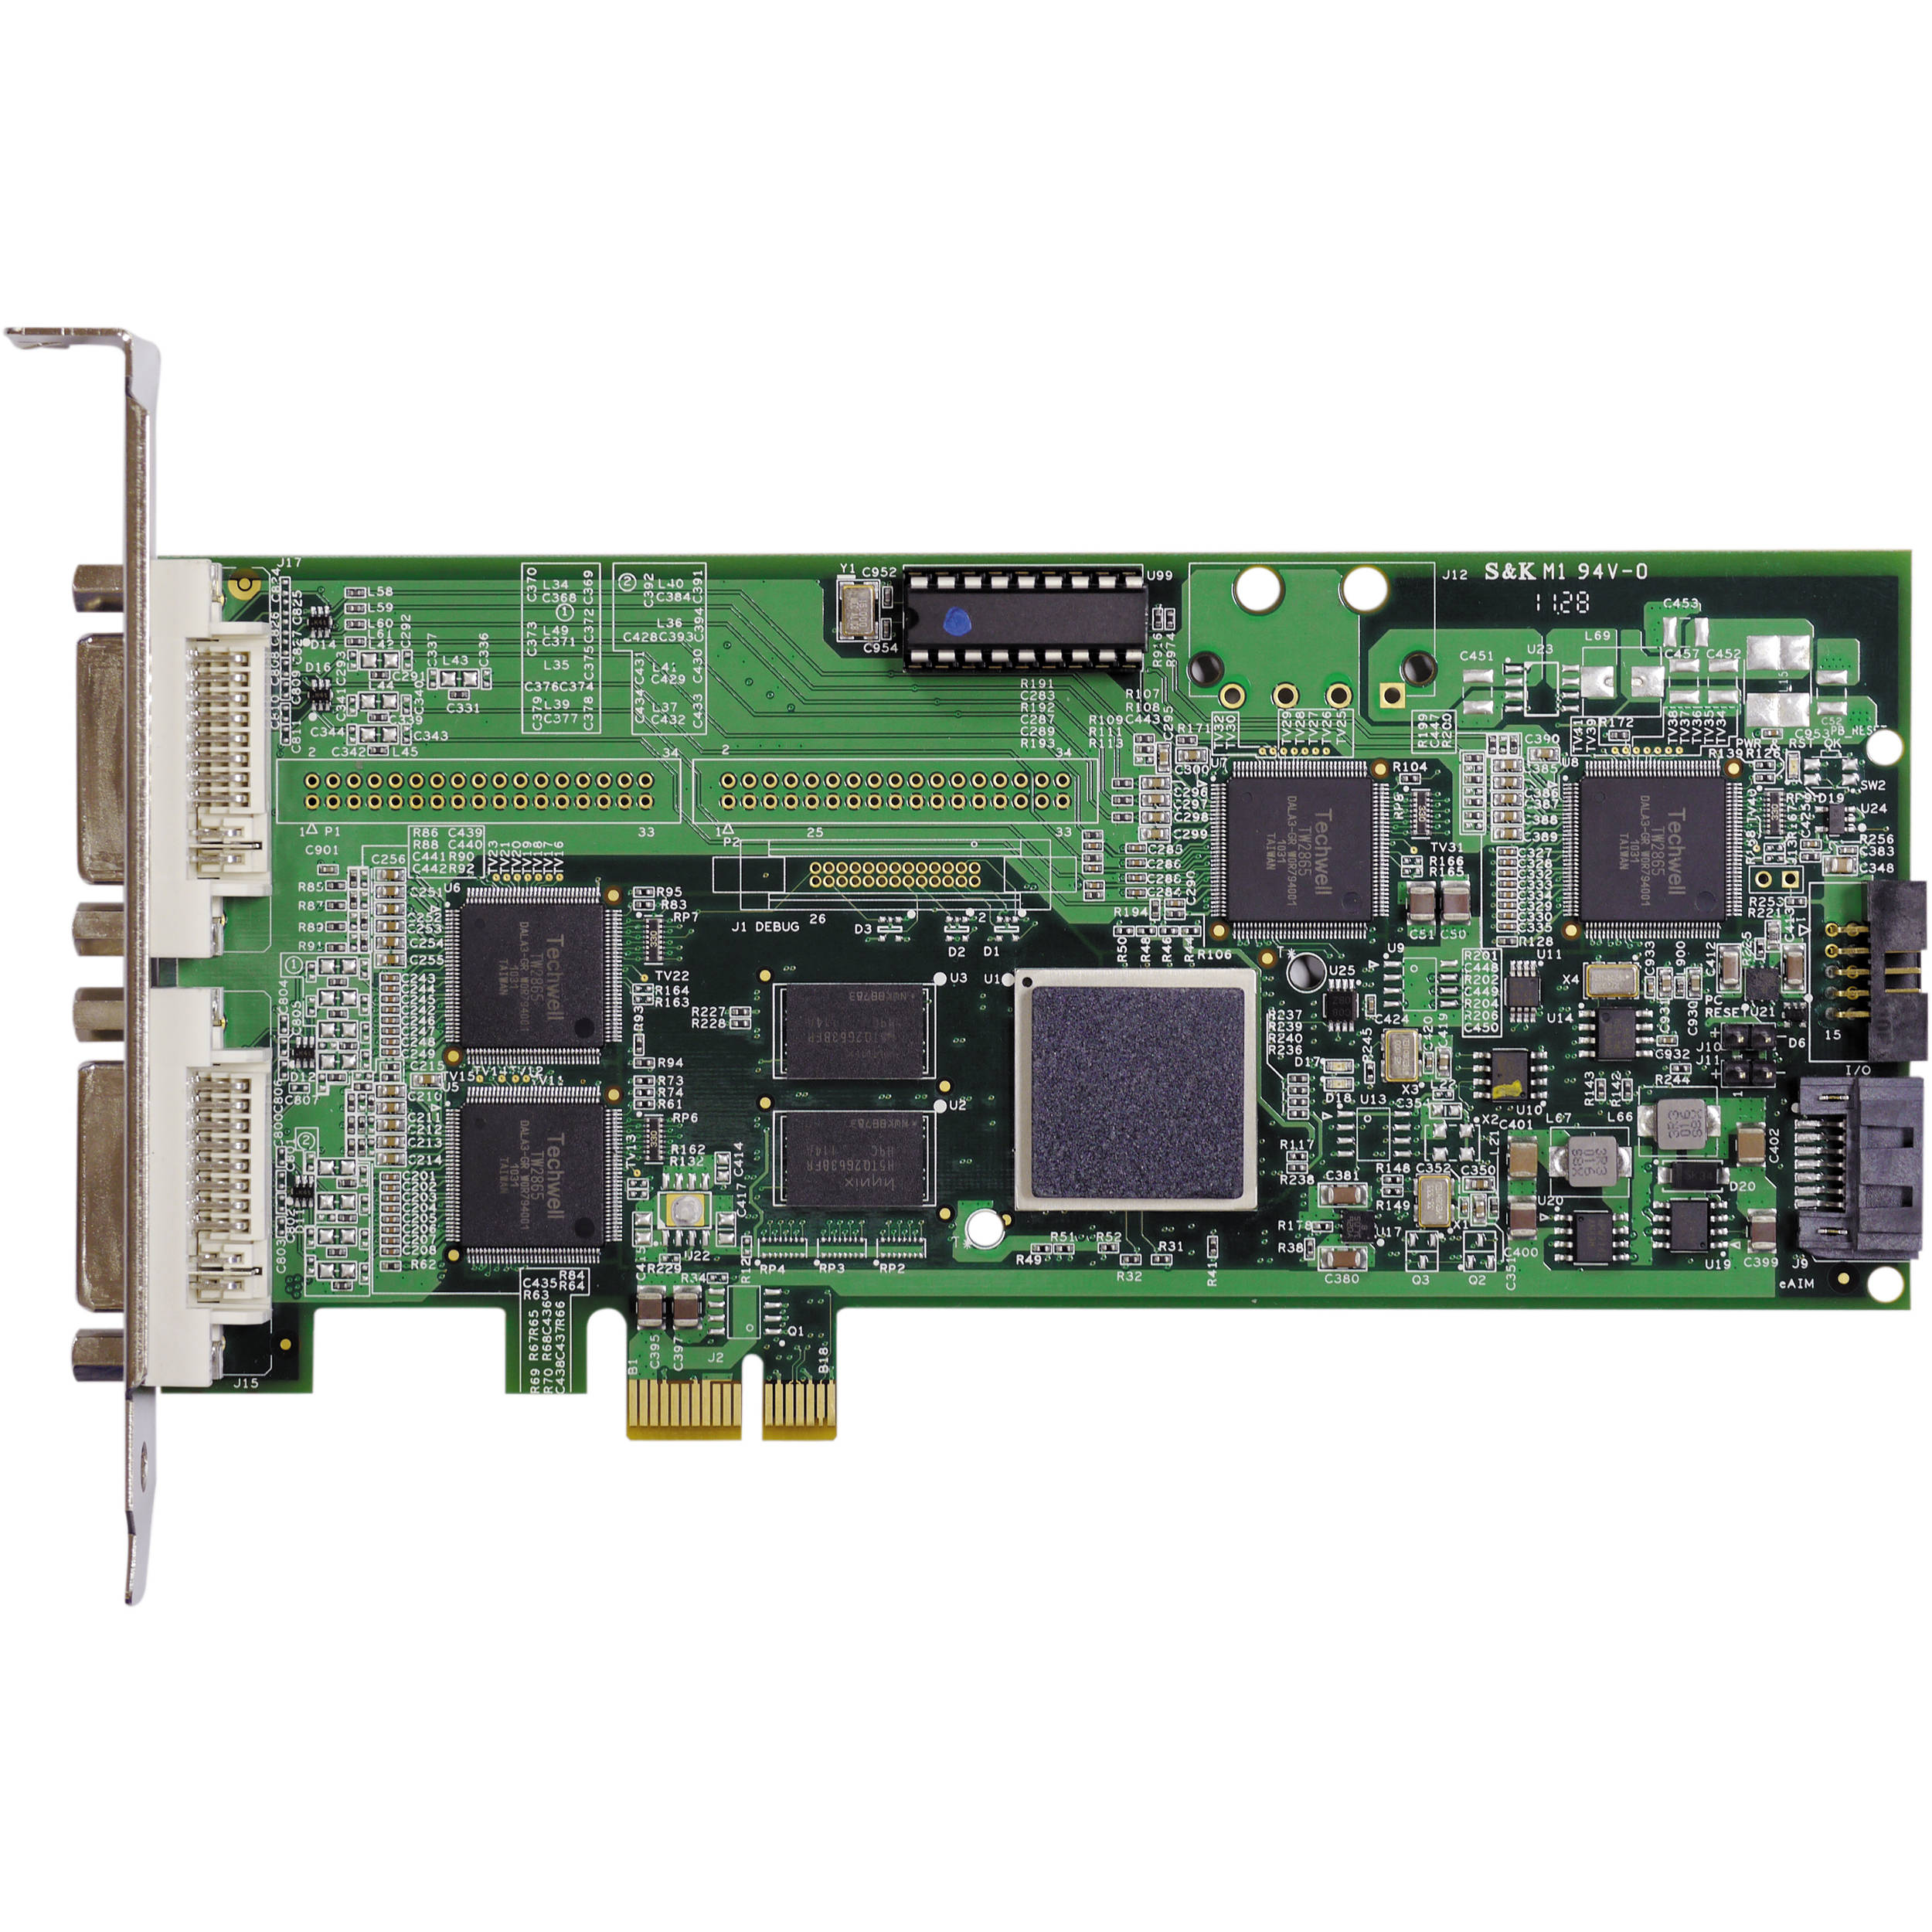 Nuuo Scb7016s Hardware Capture Card Scb 7016s Bh Photo Video Dca Pool Dehumidifiers Wiring Diagram